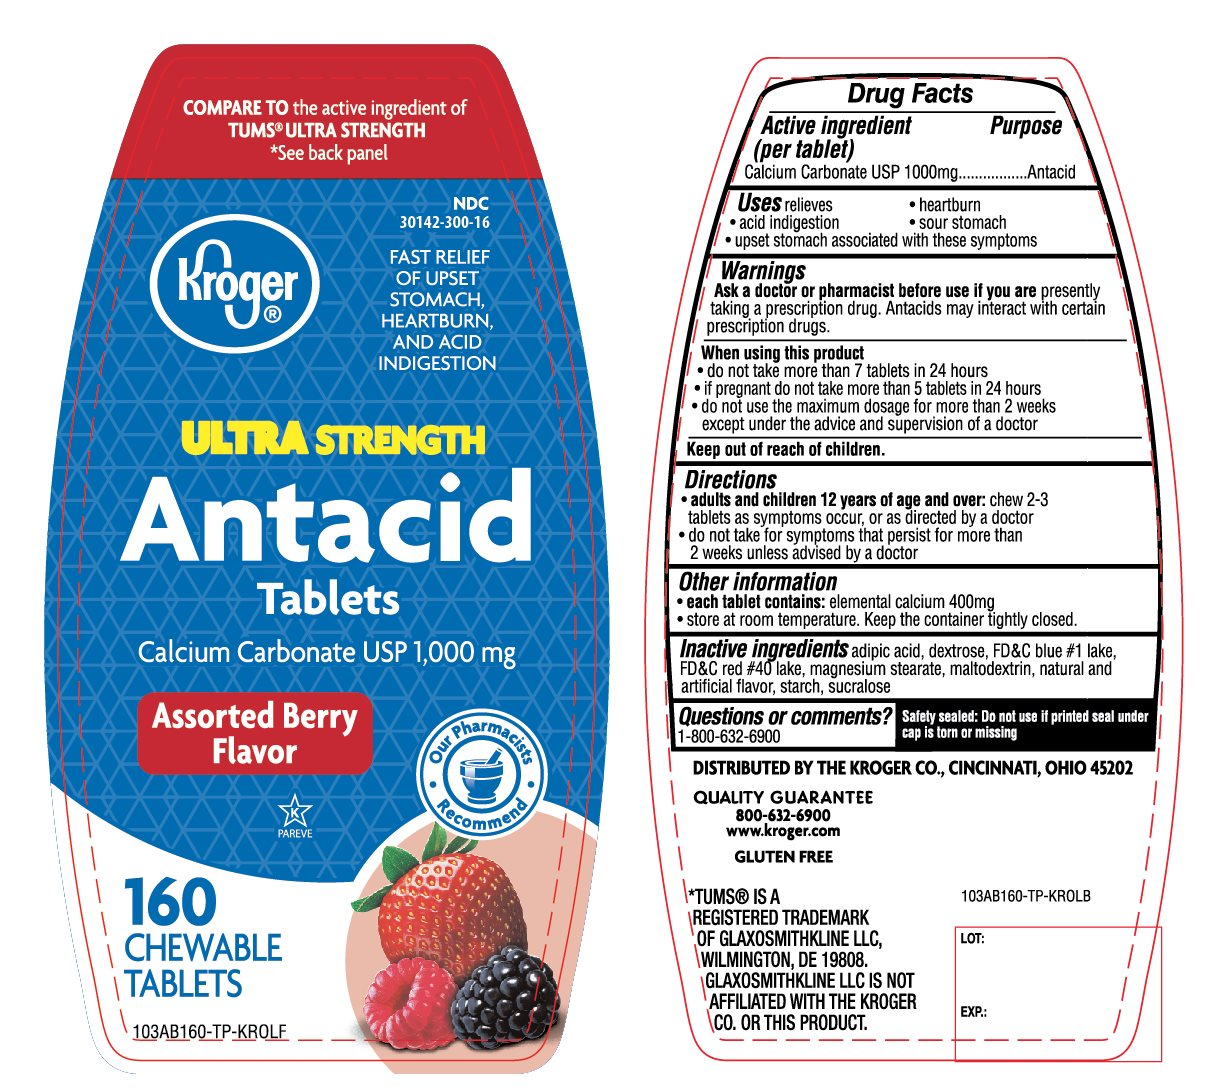 Kroger Antacid Twin Pack 160 Chewable Tablets Assorted Berry